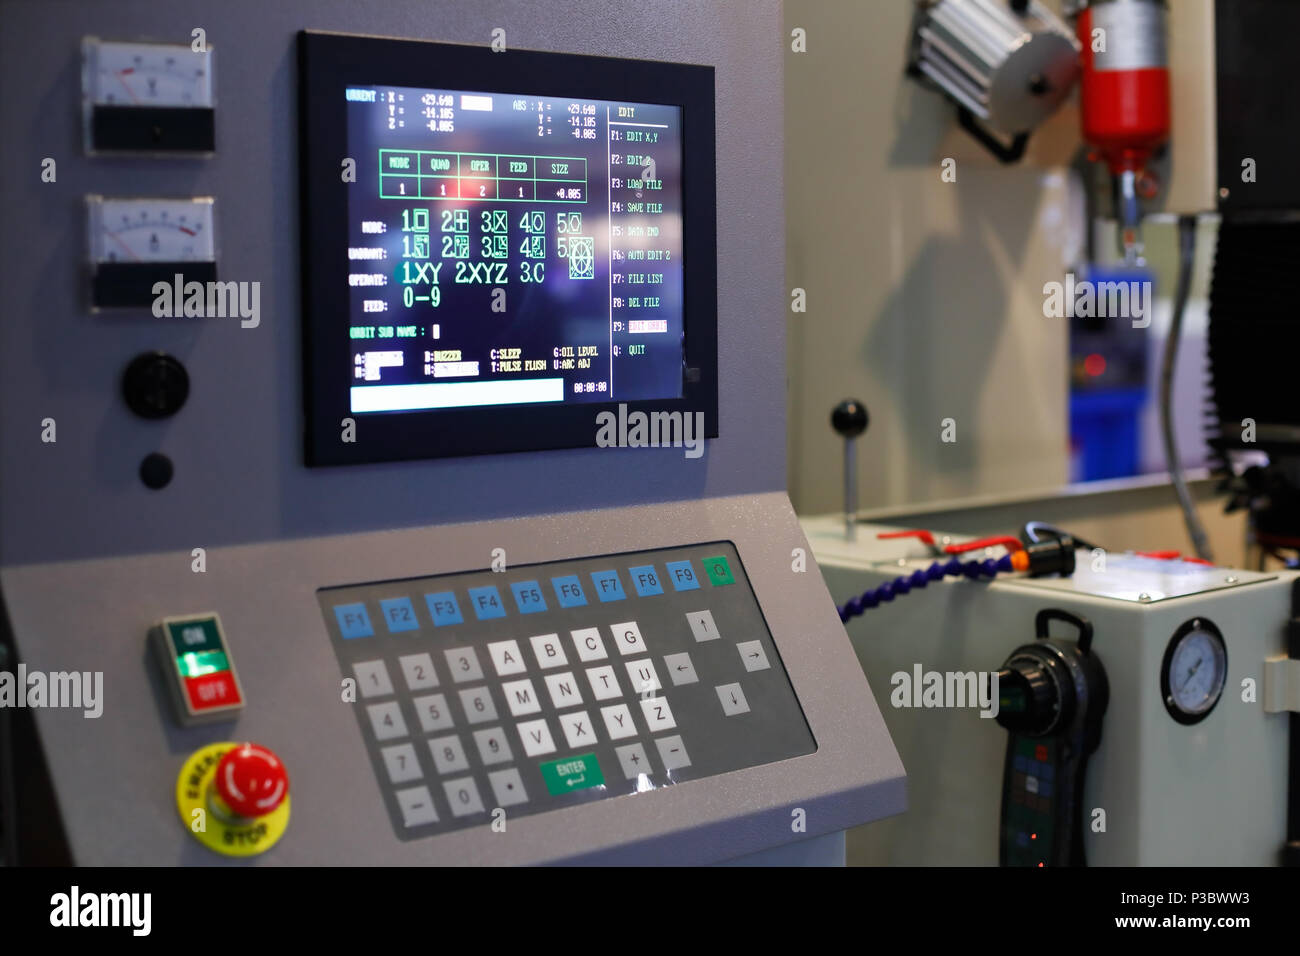 Control panel of industrial CNC equipment. Selective focus. - Stock Image